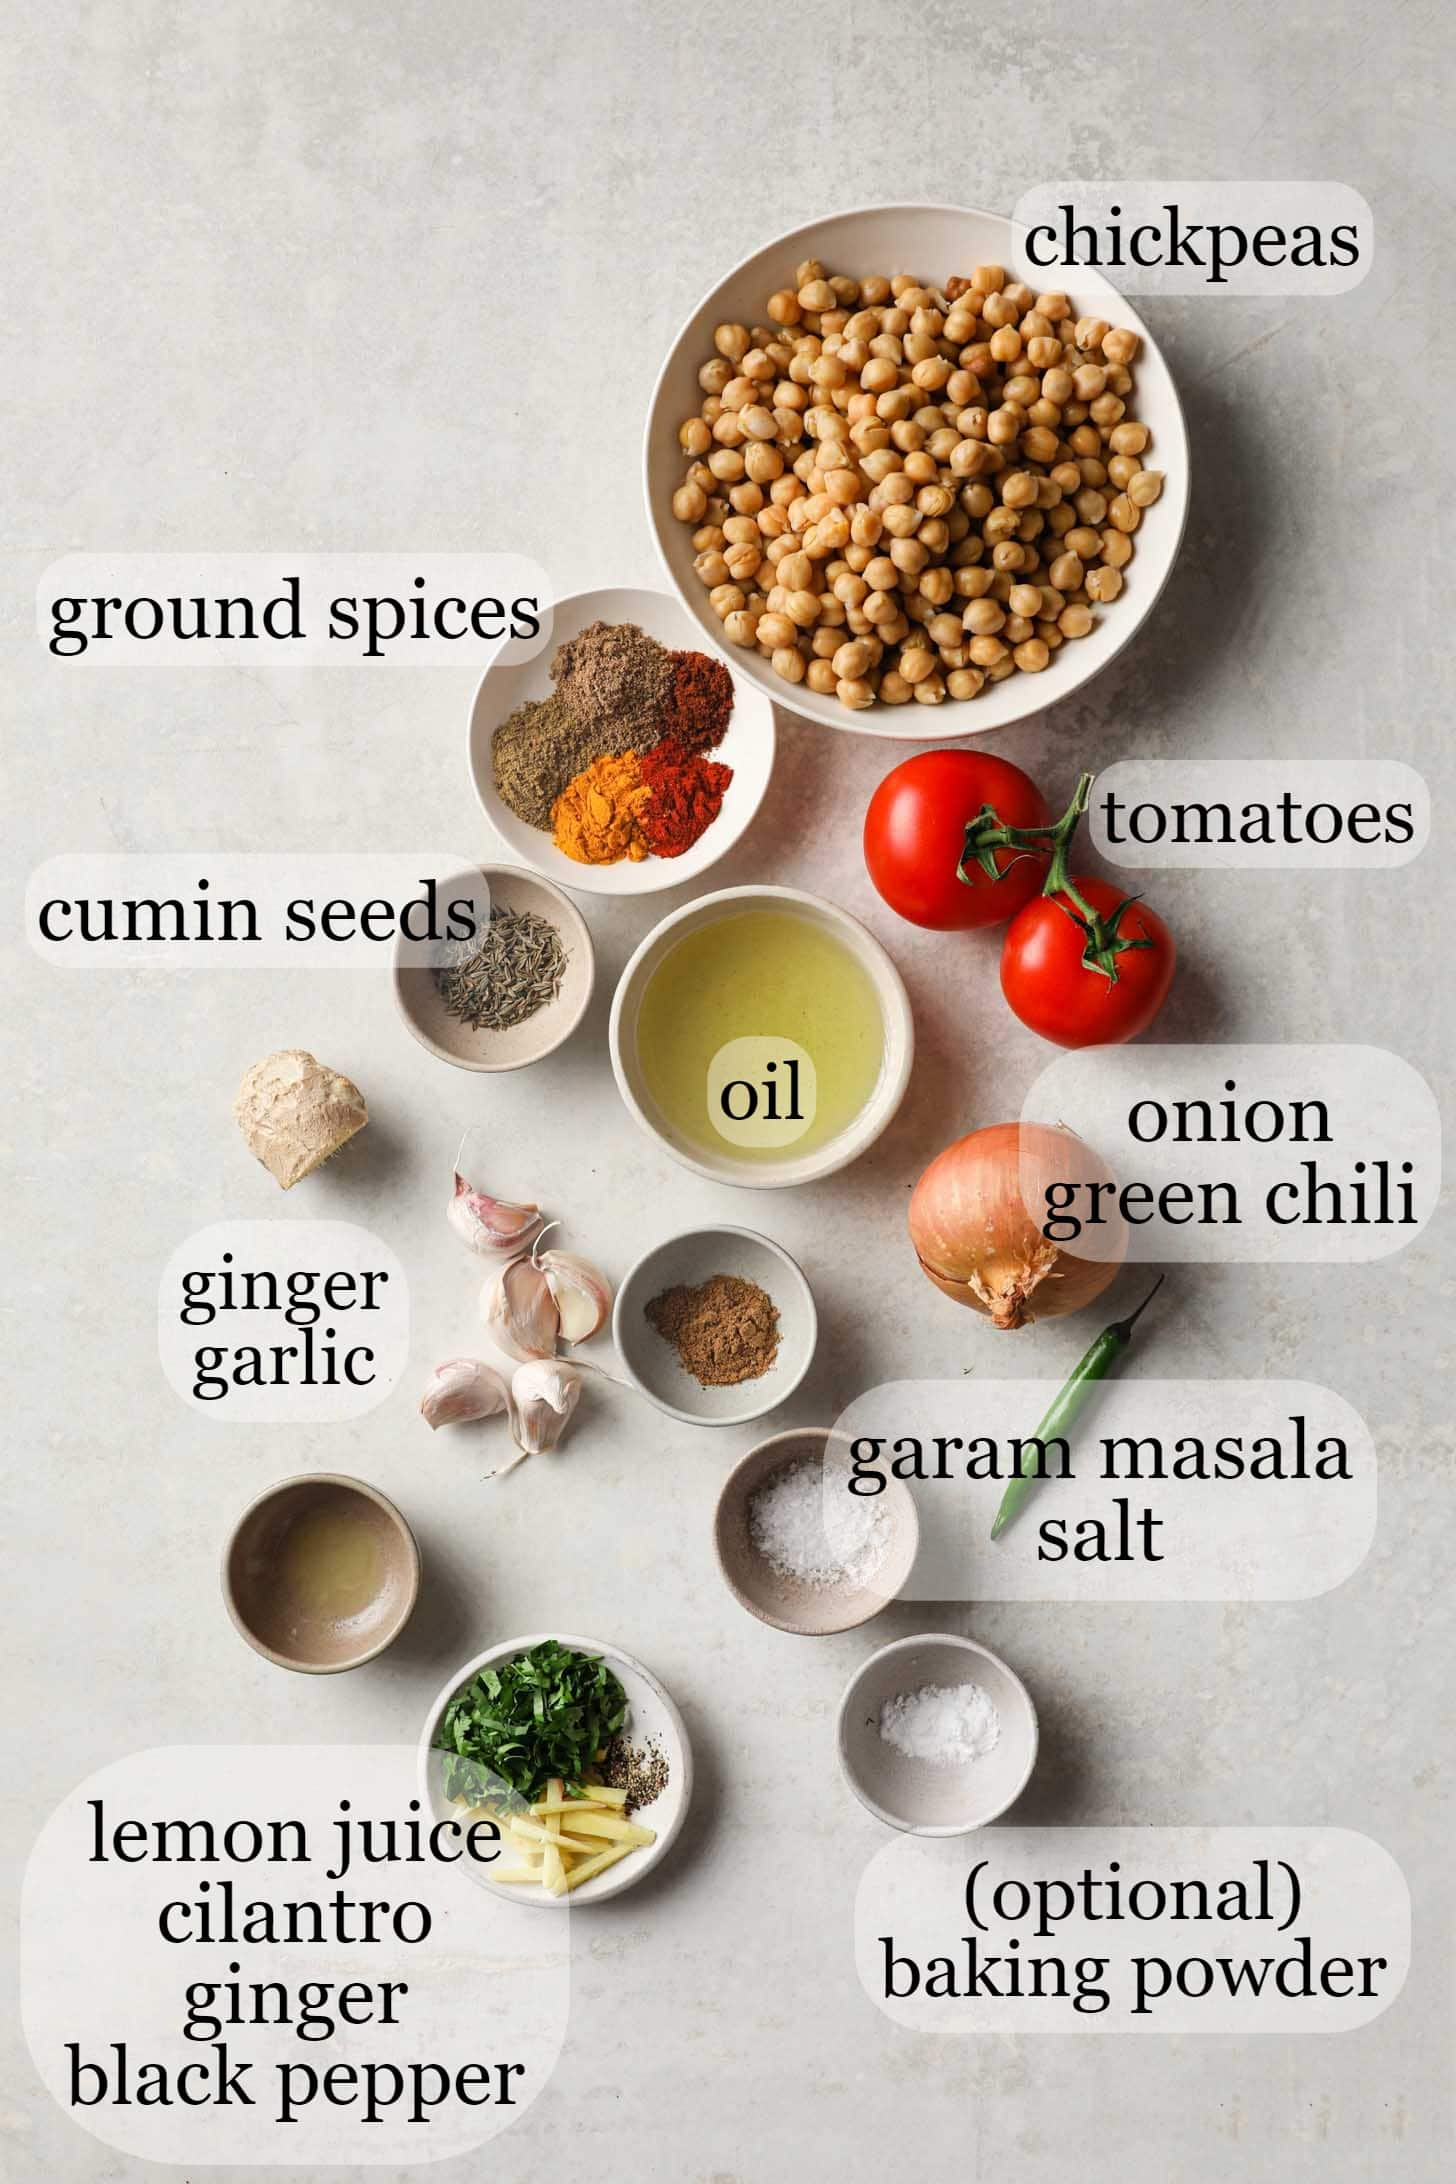 Chickpeas, tomatoes, spices, oil, onions, garlic, ginger, among other Chana Masala ingredients on a gray surface